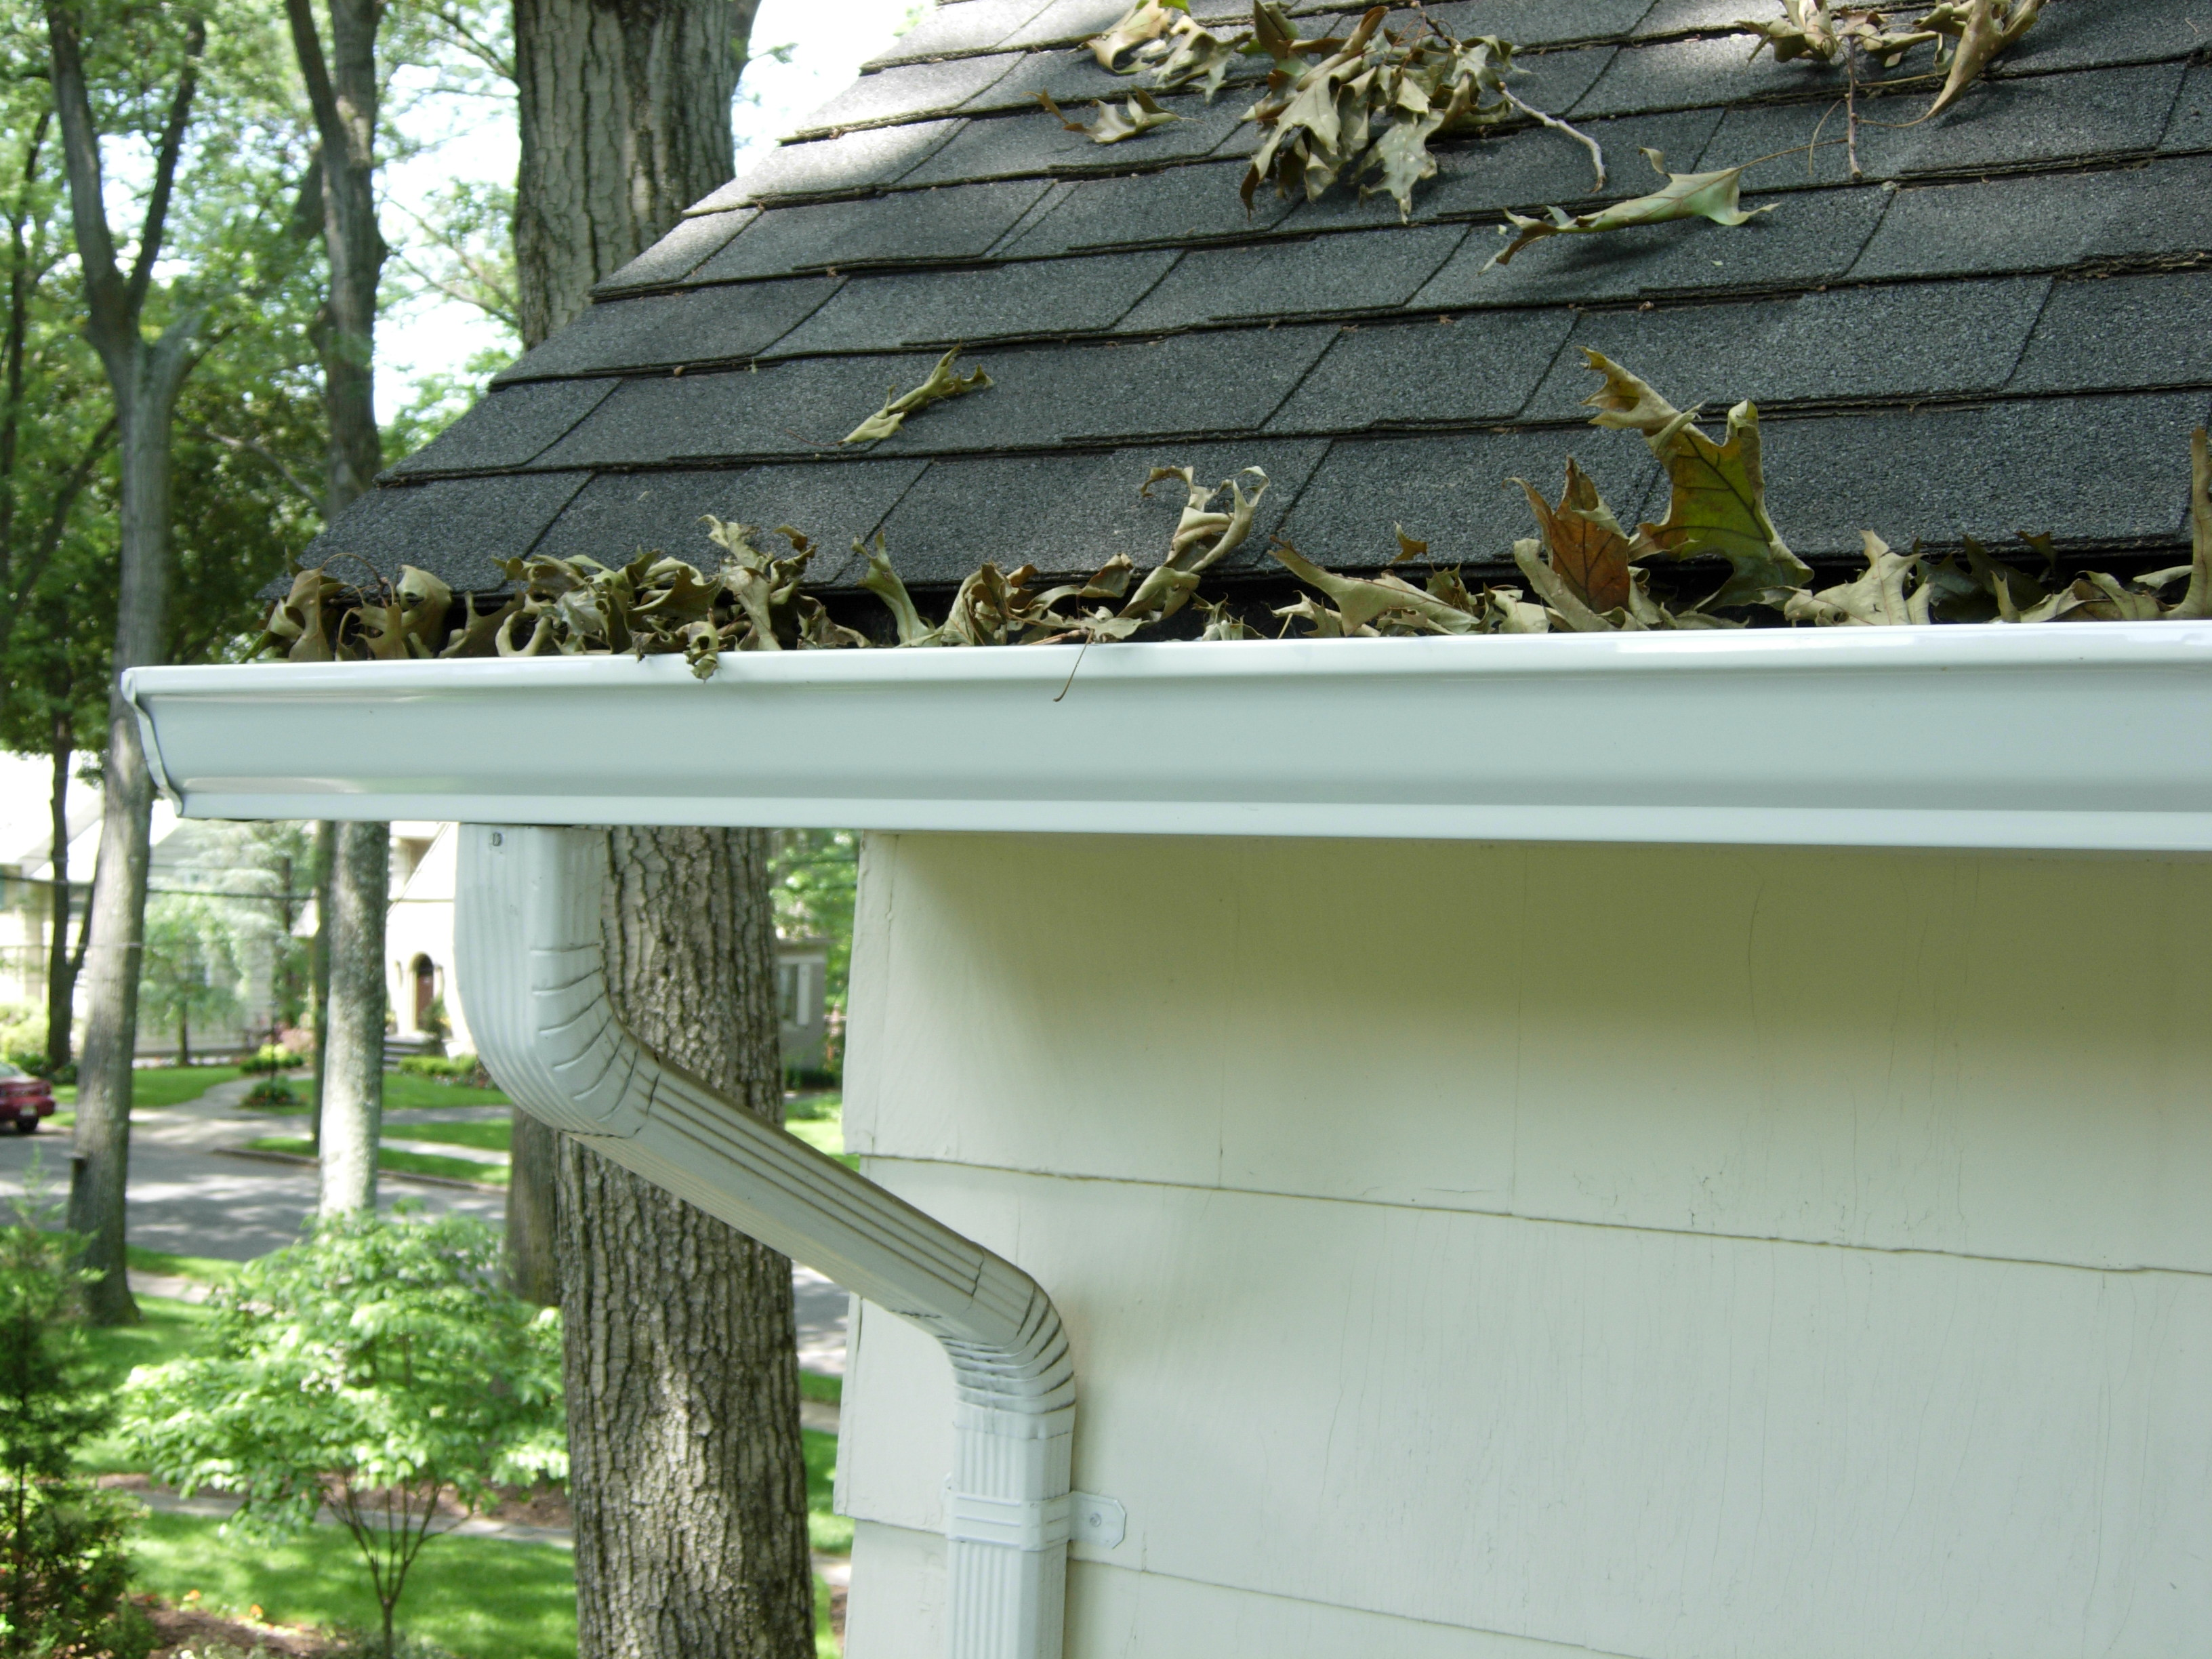 Solutions For Gutter Debris